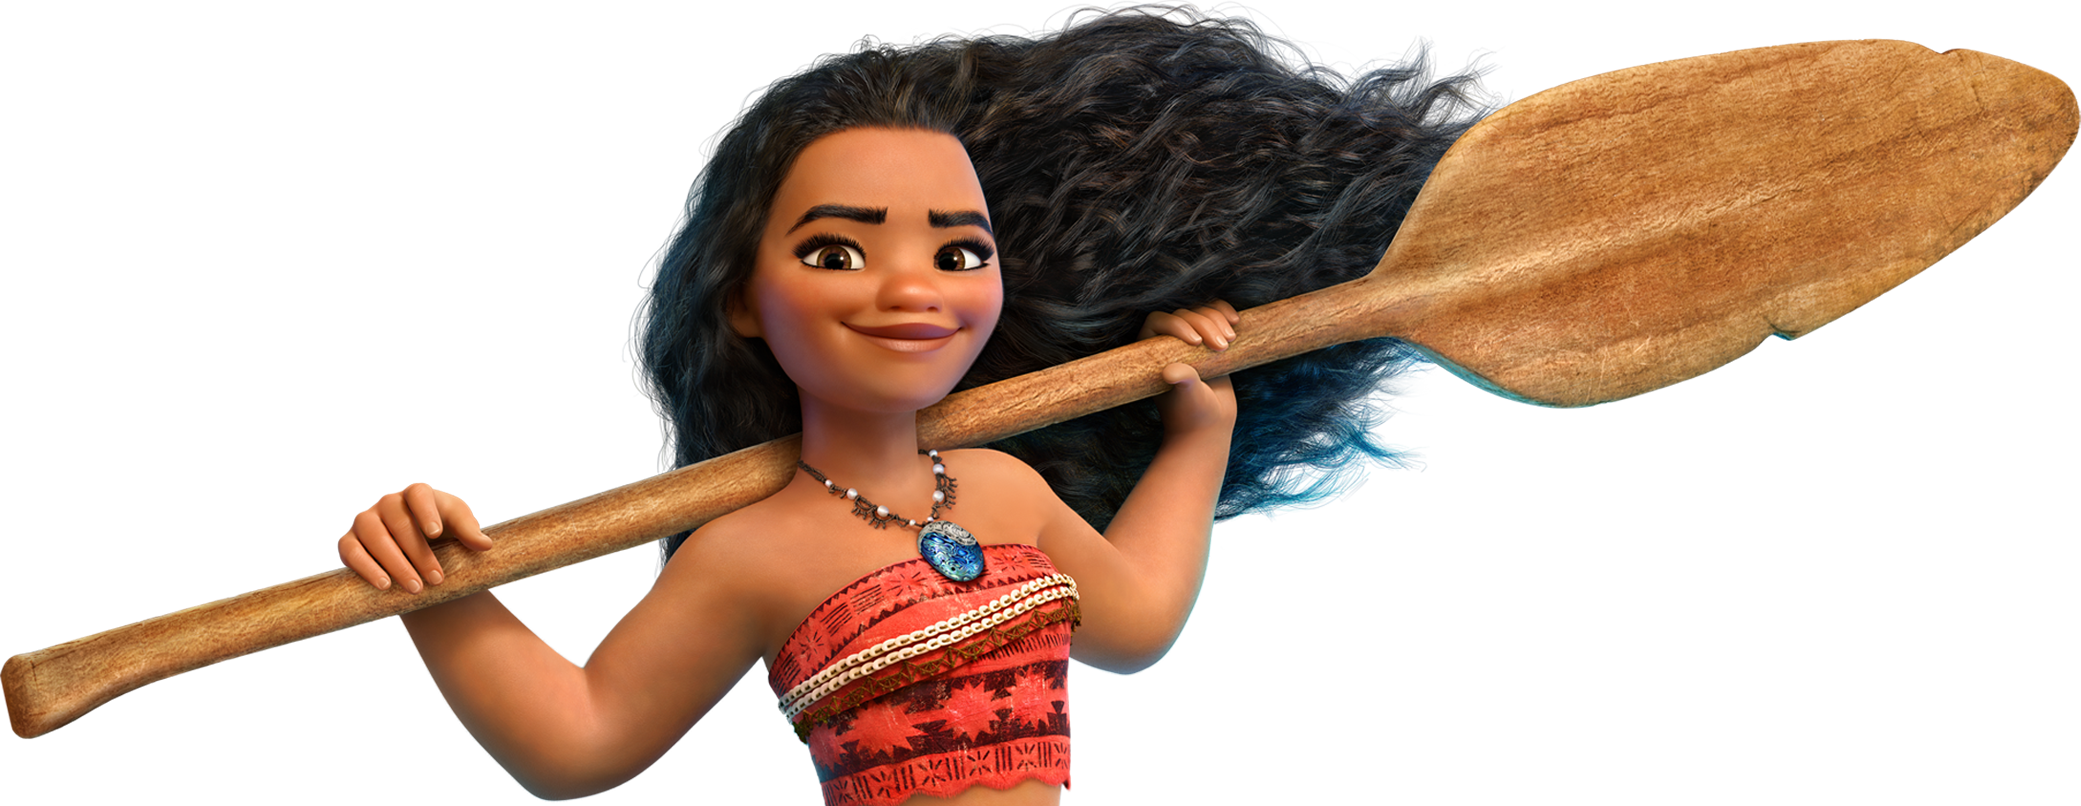 Free House Design Download Moana Clipart 46117 Free Icons And Png Backgrounds